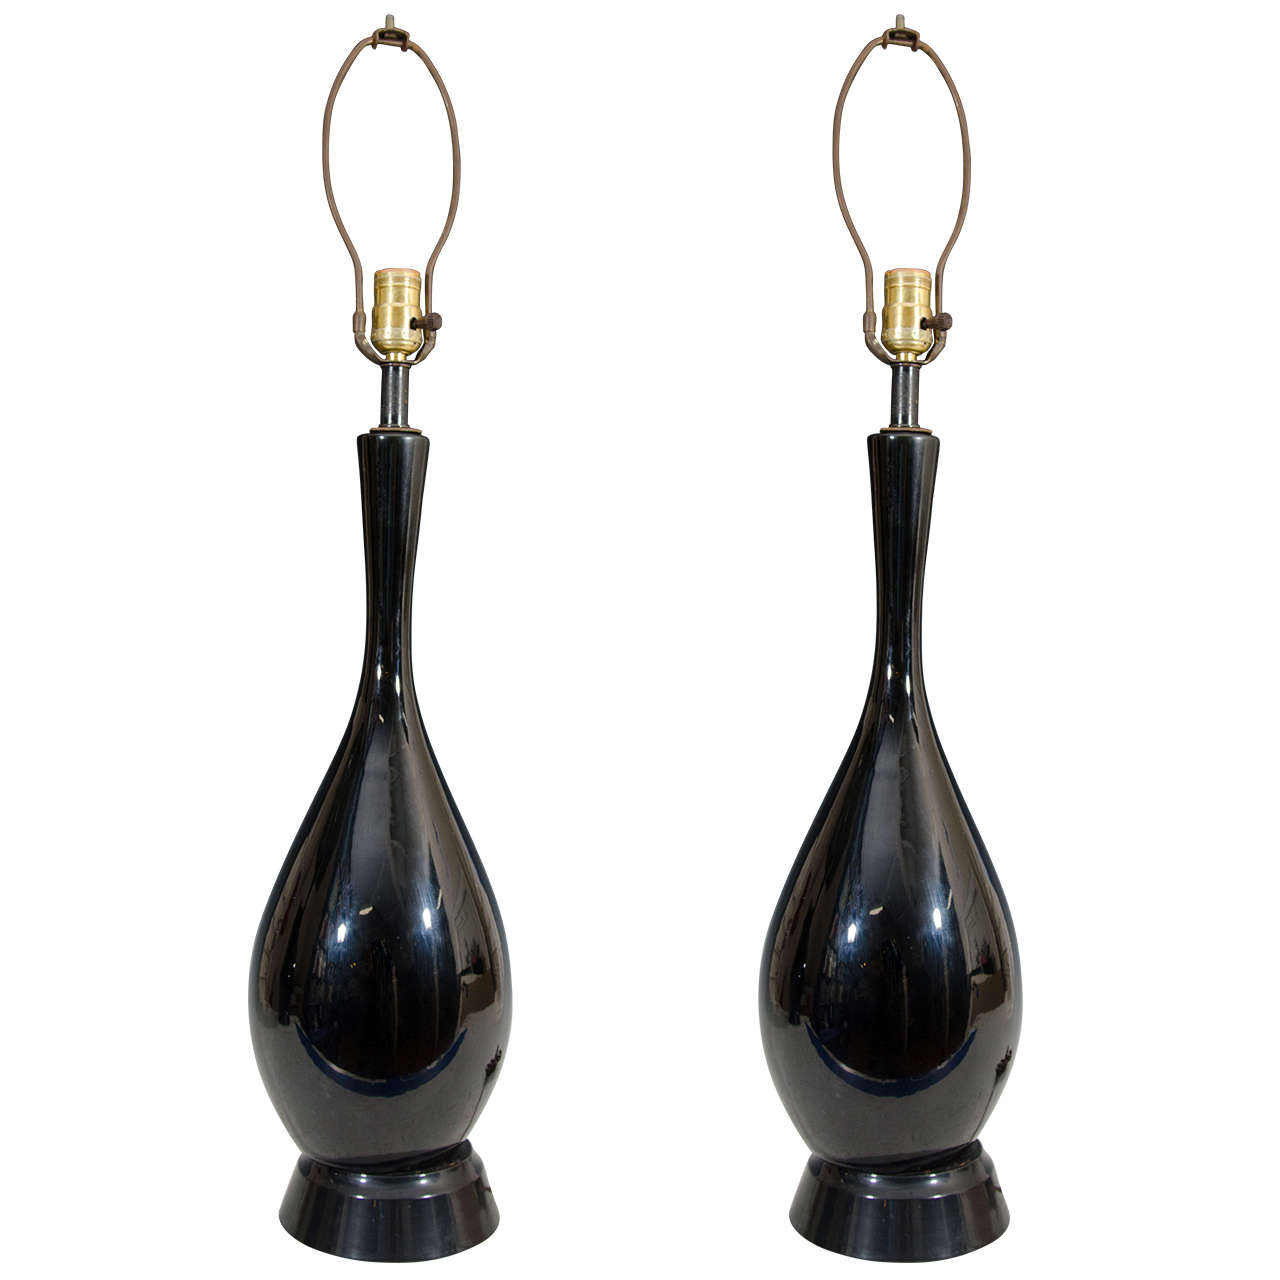 Vintage Pair of Black Ceramic Table Lamps with Elongated Necks For Sale